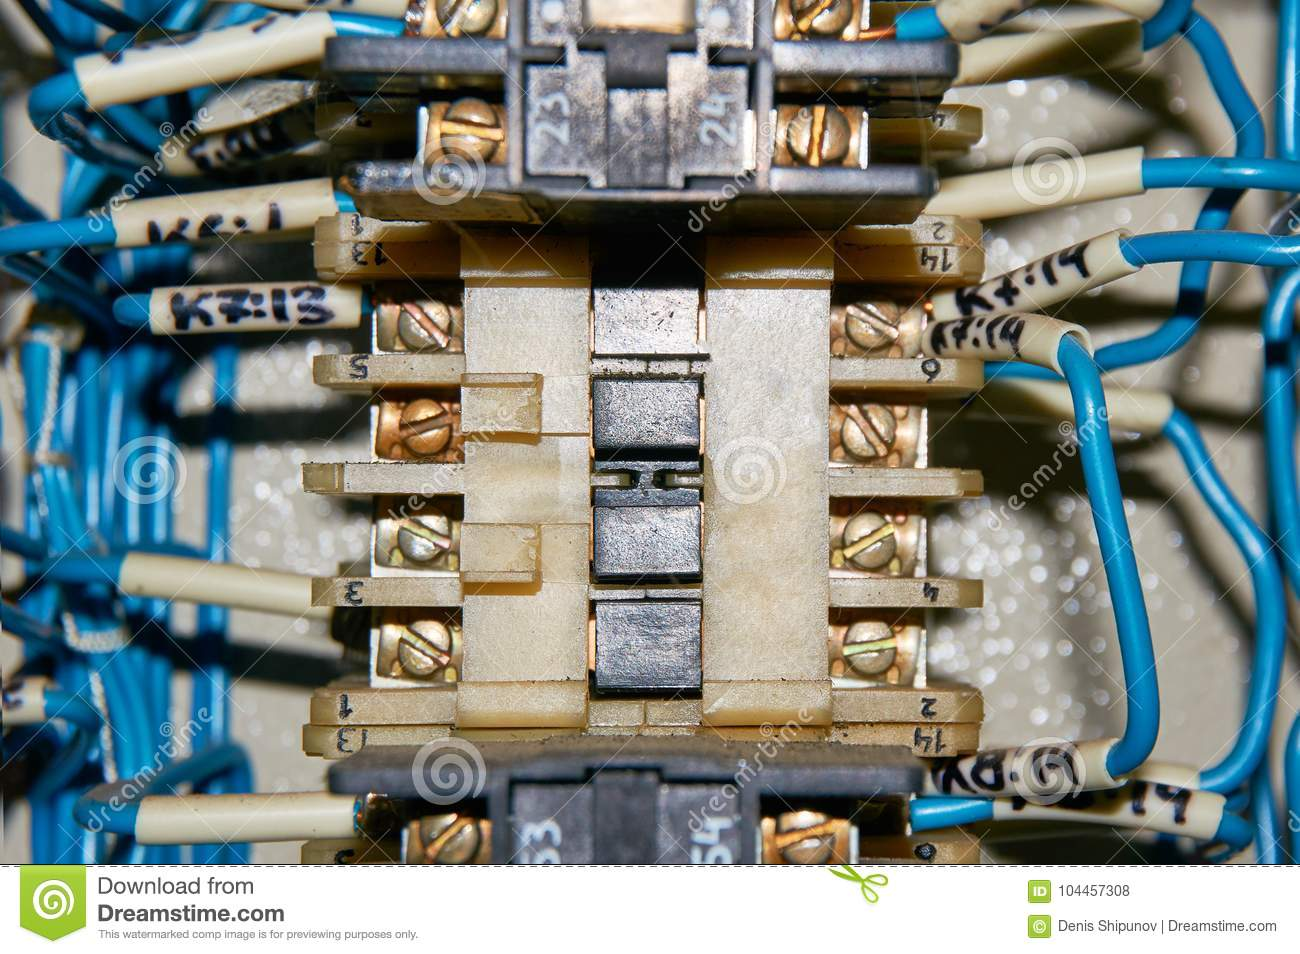 Some Electrical Relay Is Mounted On The Mounting Panel Relays Wiring Socket Connections Inserted In Base Or To Wires Connected With Terminals And Marking